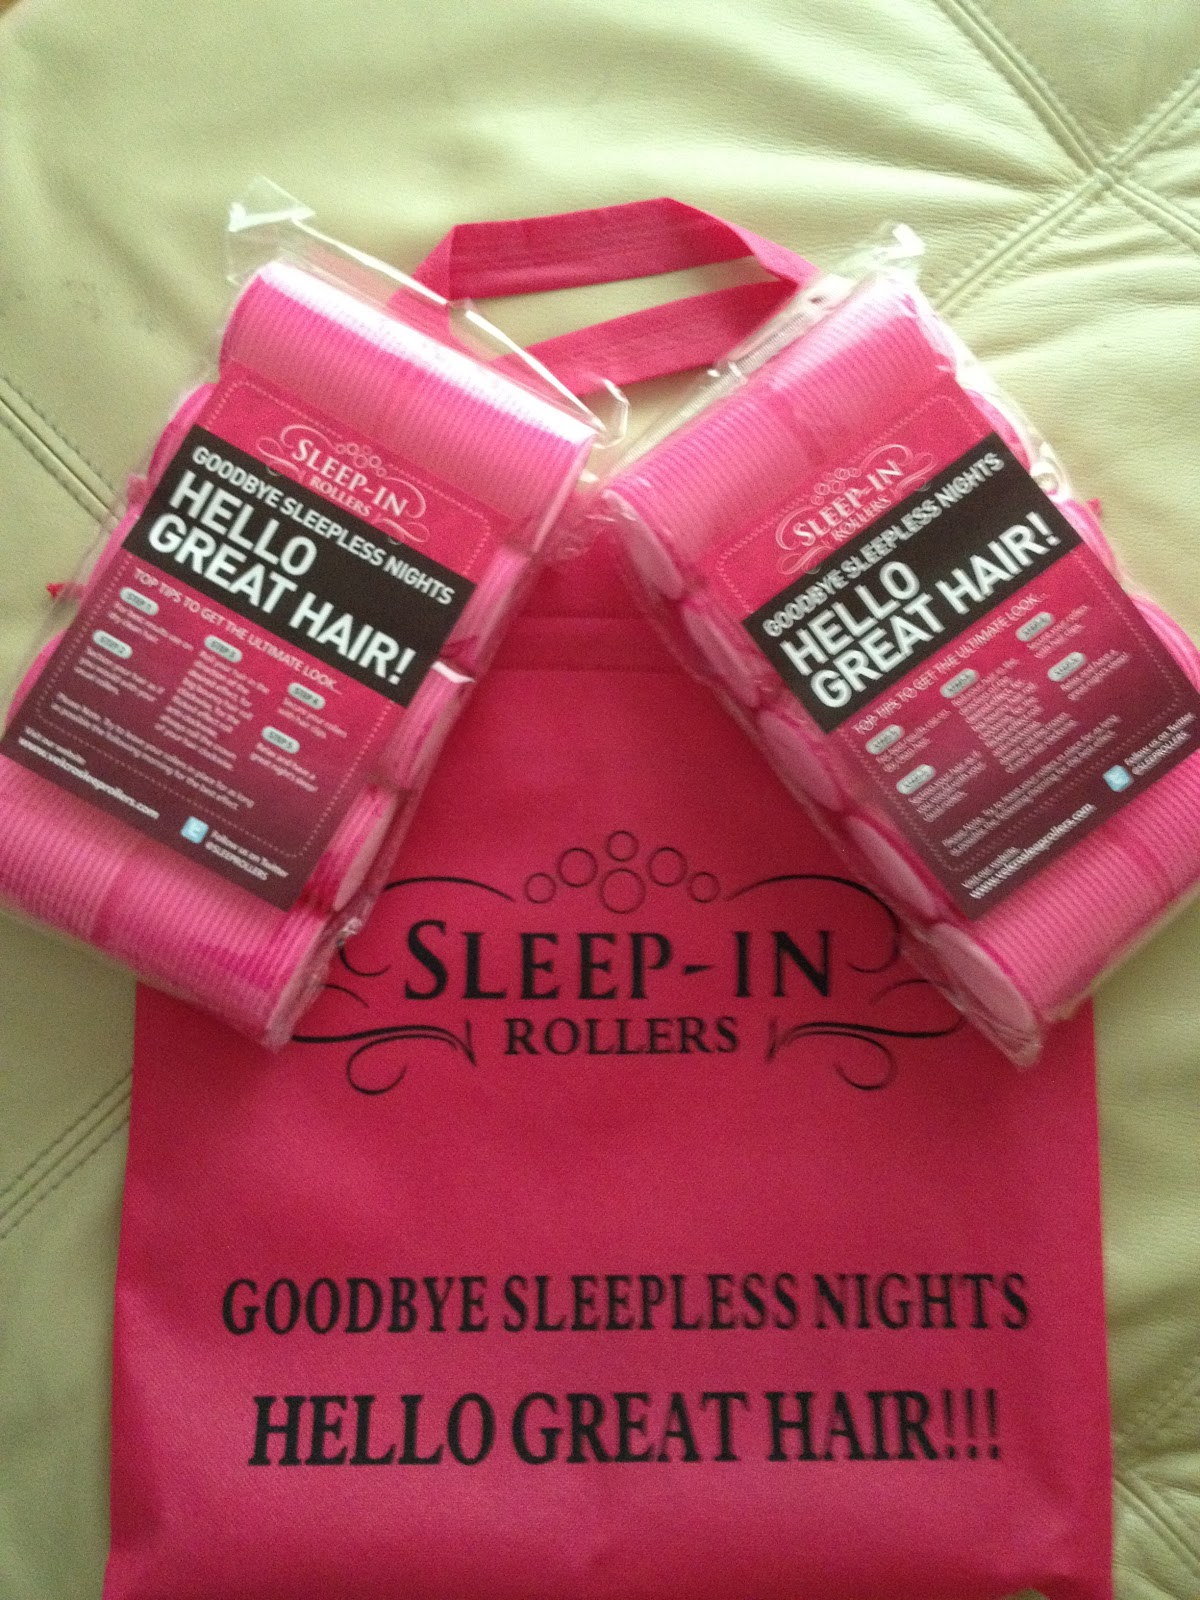 sleep in rollers instructions